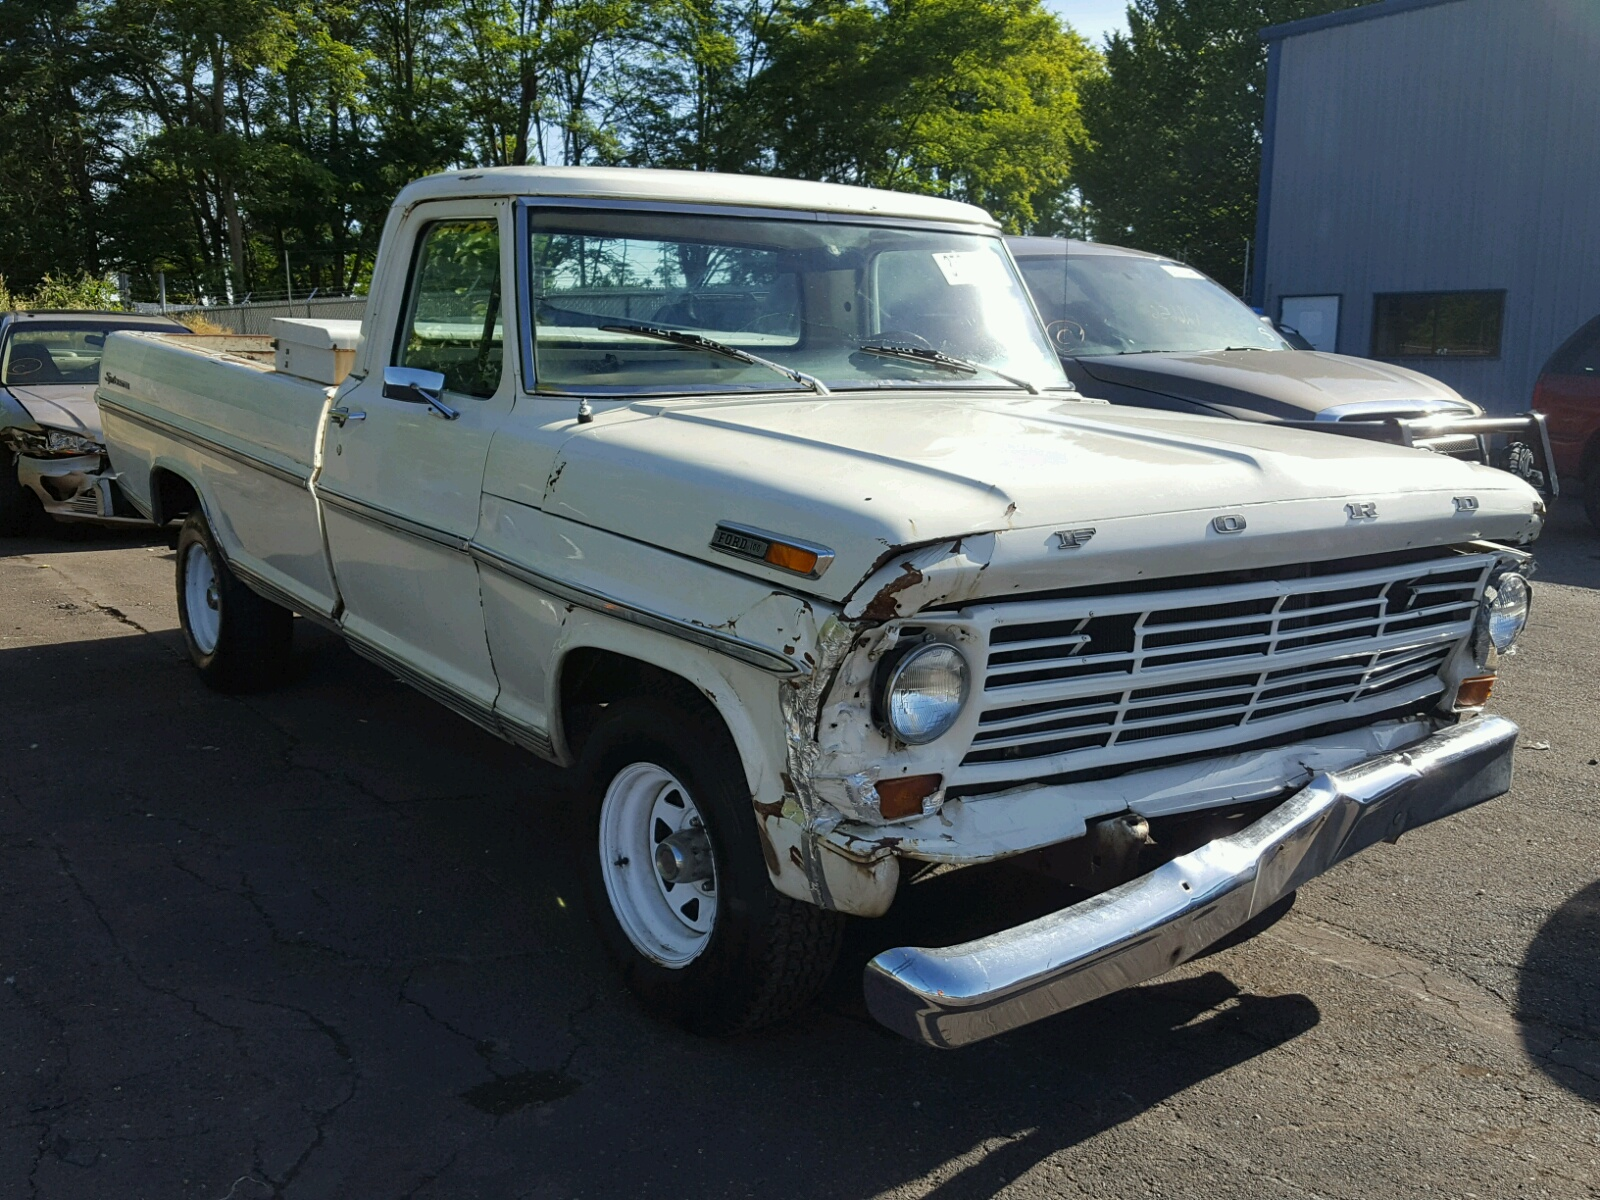 F10yrn70694 1972 White Ford F 100 On Sale In Or Portland North 1955 F100 Value Left View